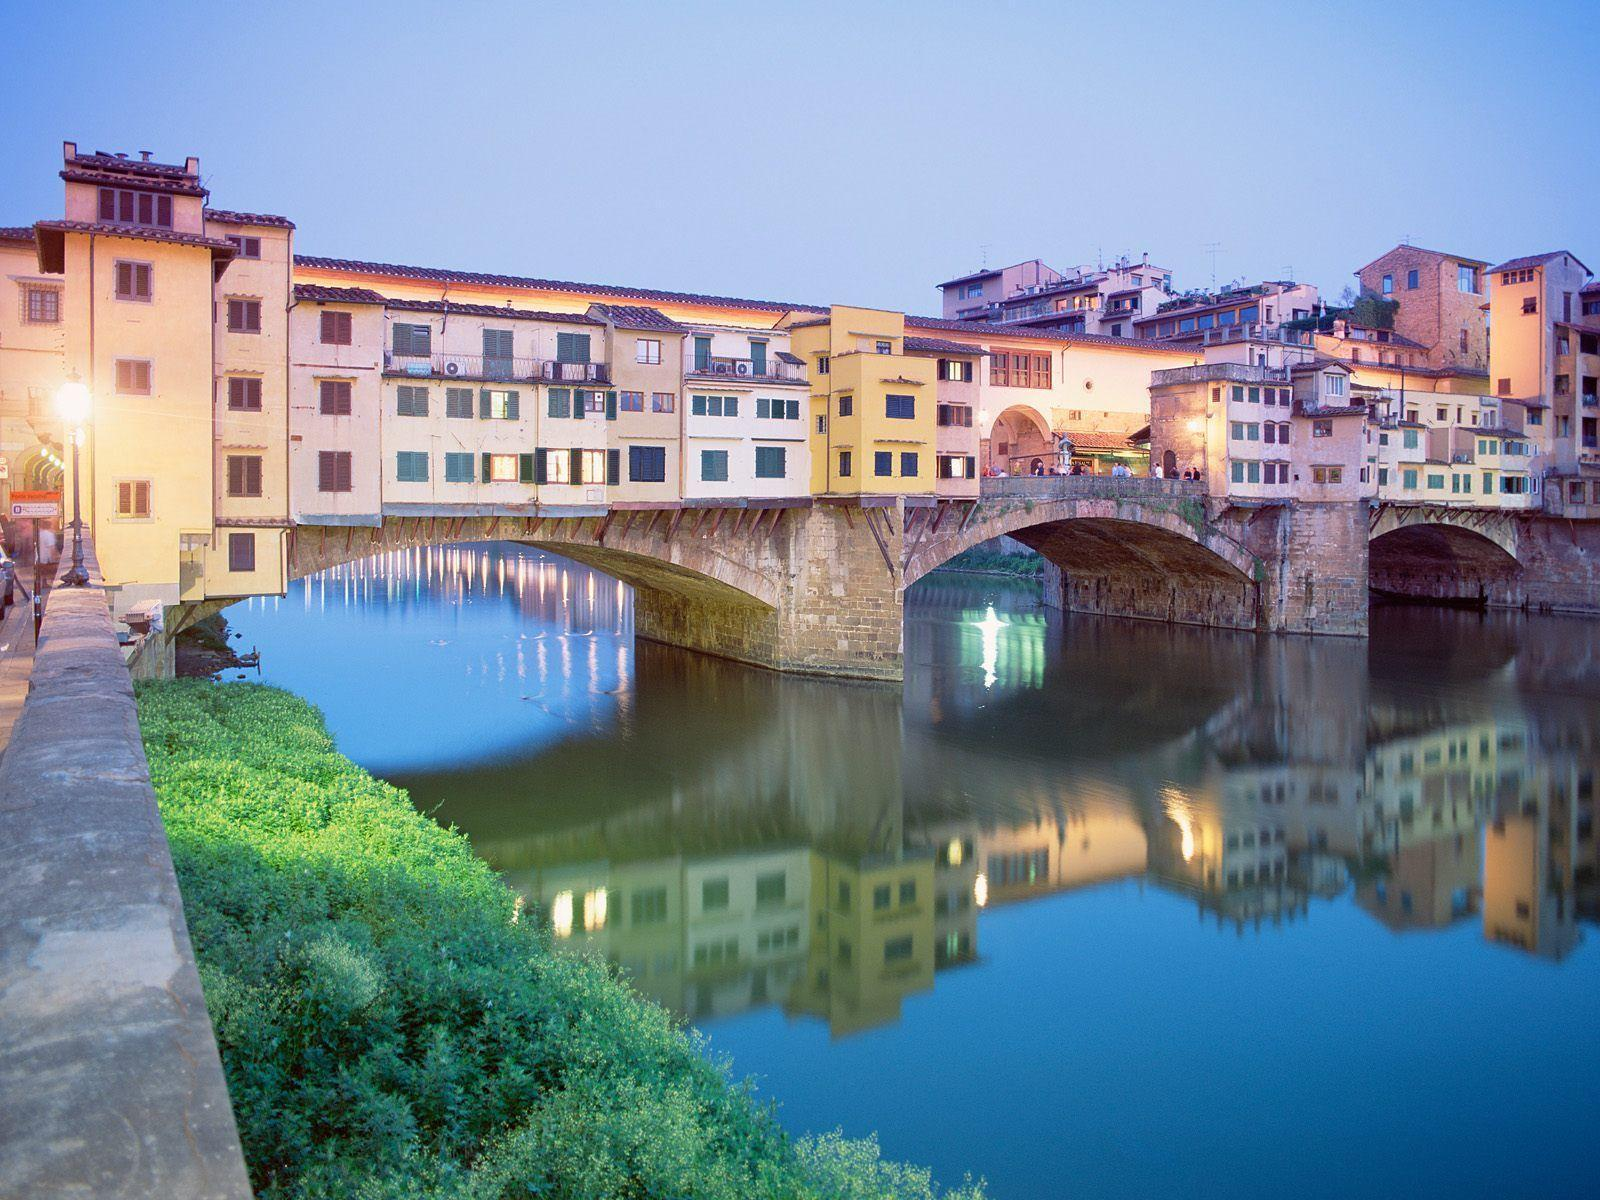 Desktop Wallpaper · Gallery · Travels · Florence, Italy | Free ...